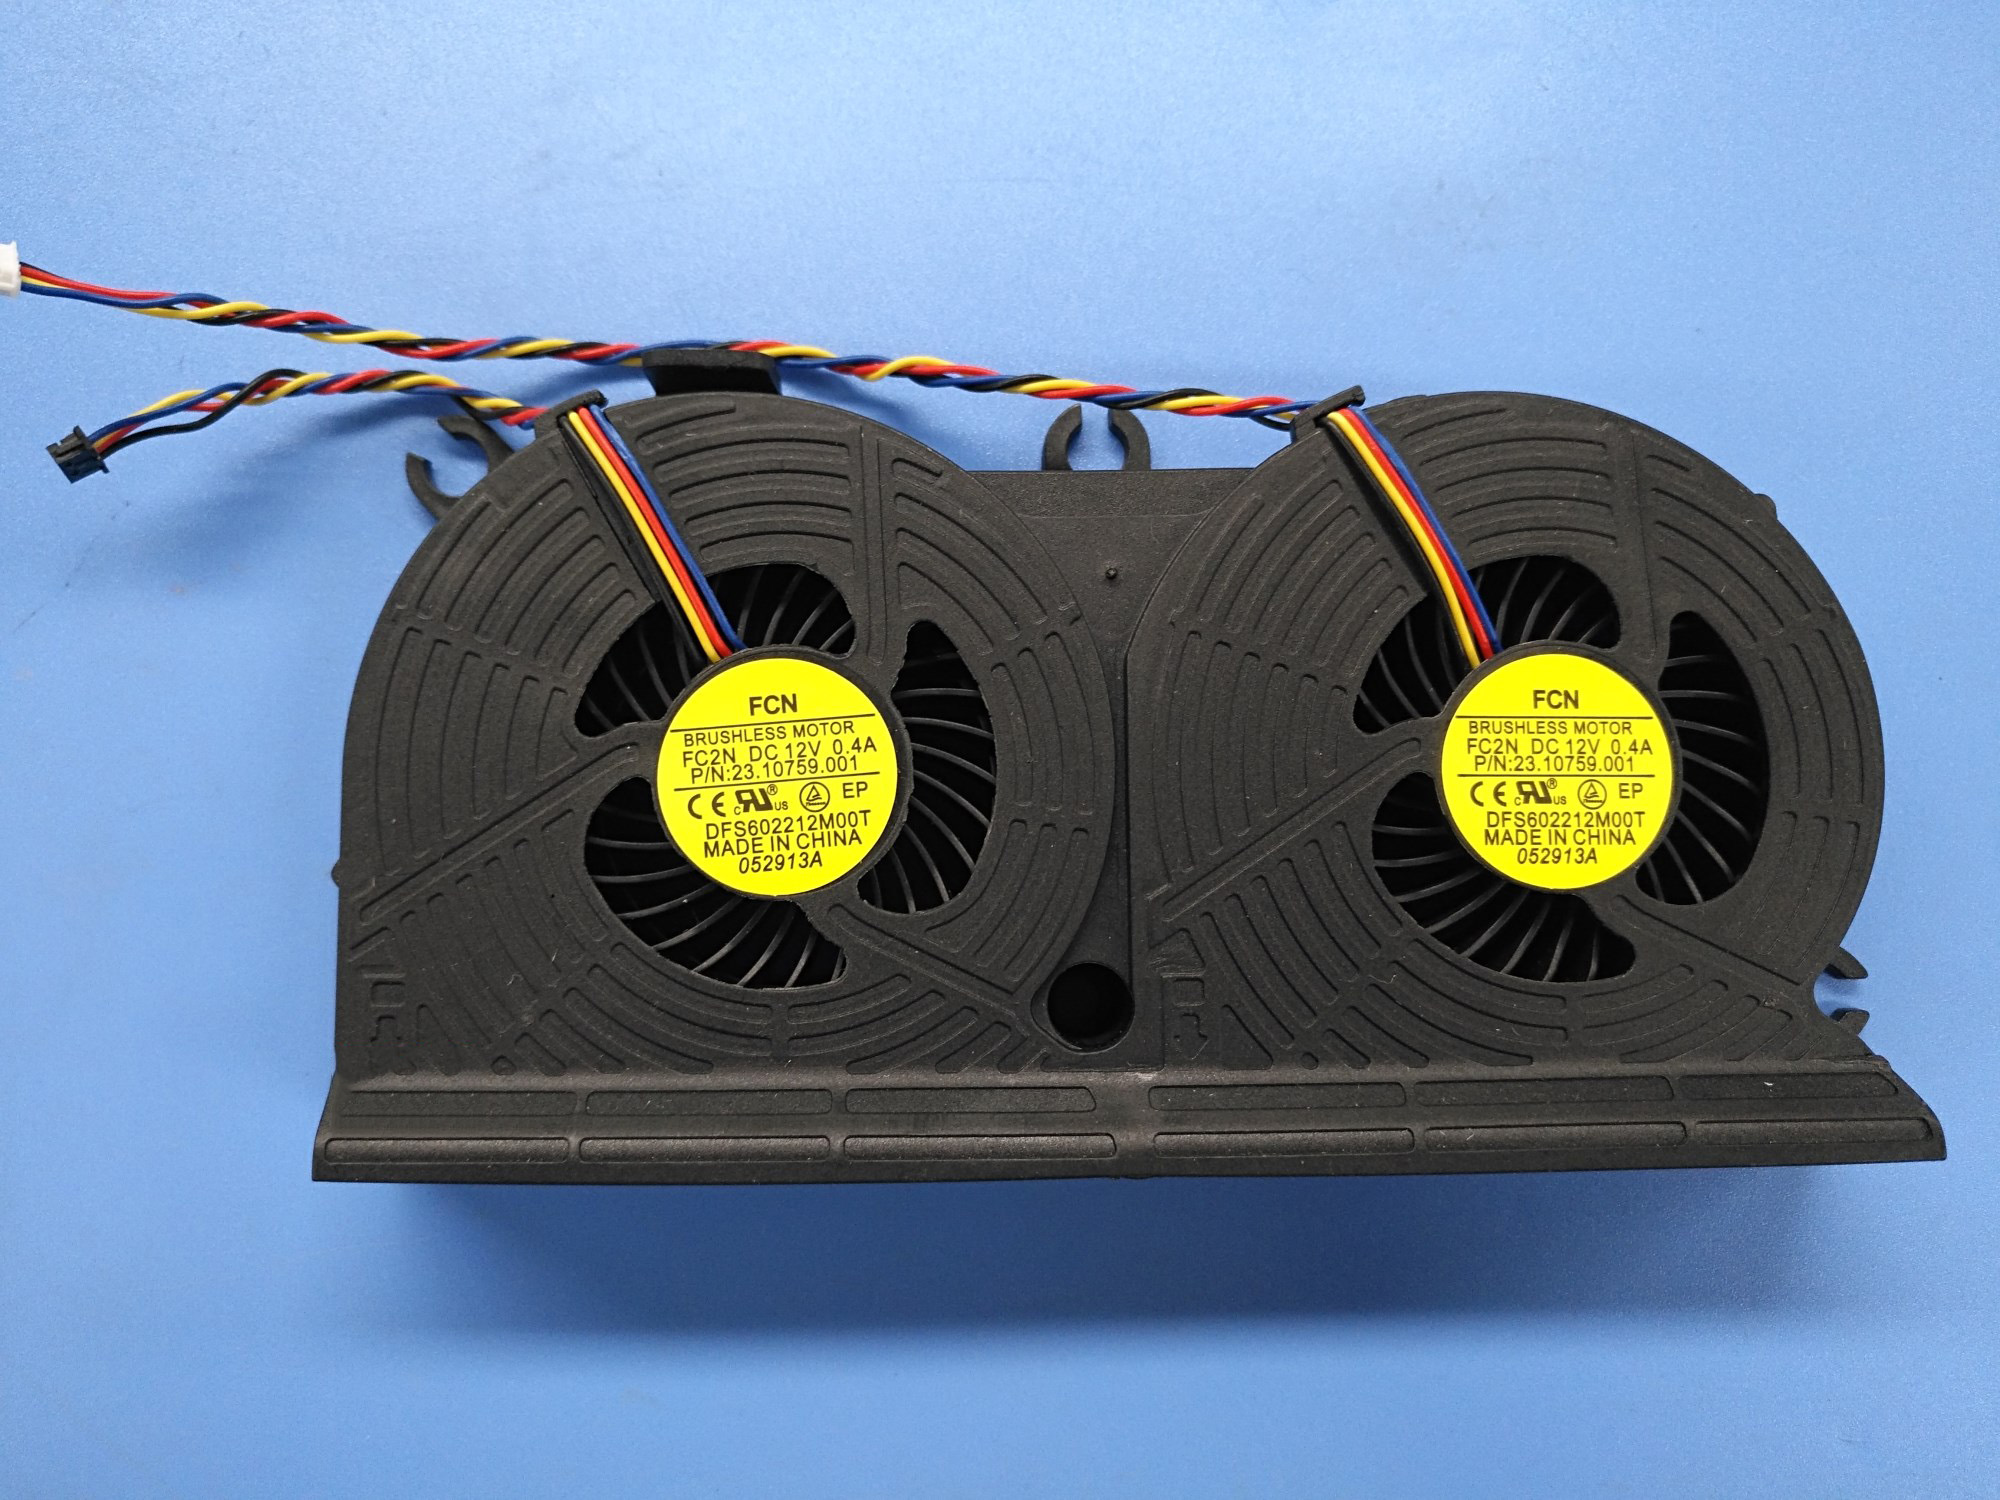 733489-001 DFS602212M00T FC2N MF80201V1-C010-S9A 023.10006 New Laptop Cpu Cooling Fan For ELITEONE 800 G1 705 G1 Well Tested